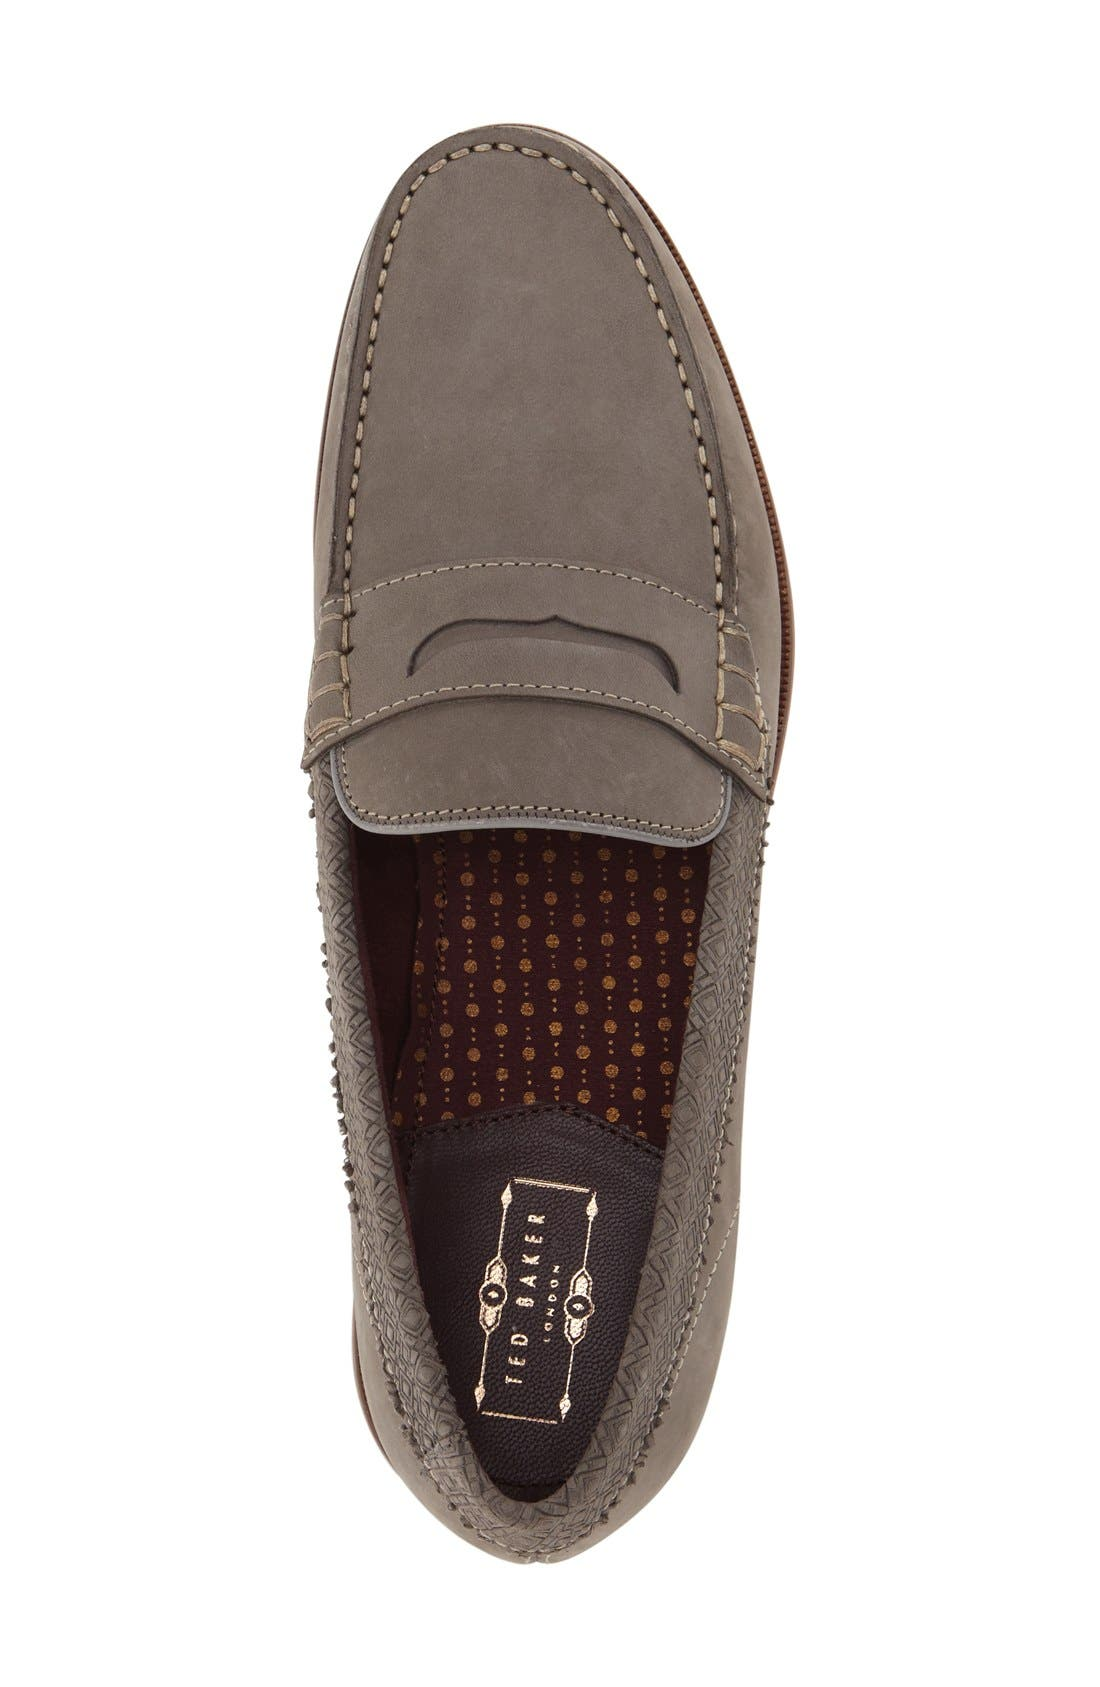 'Miicke 2' Penny Loafer,                             Alternate thumbnail 2, color,                             055